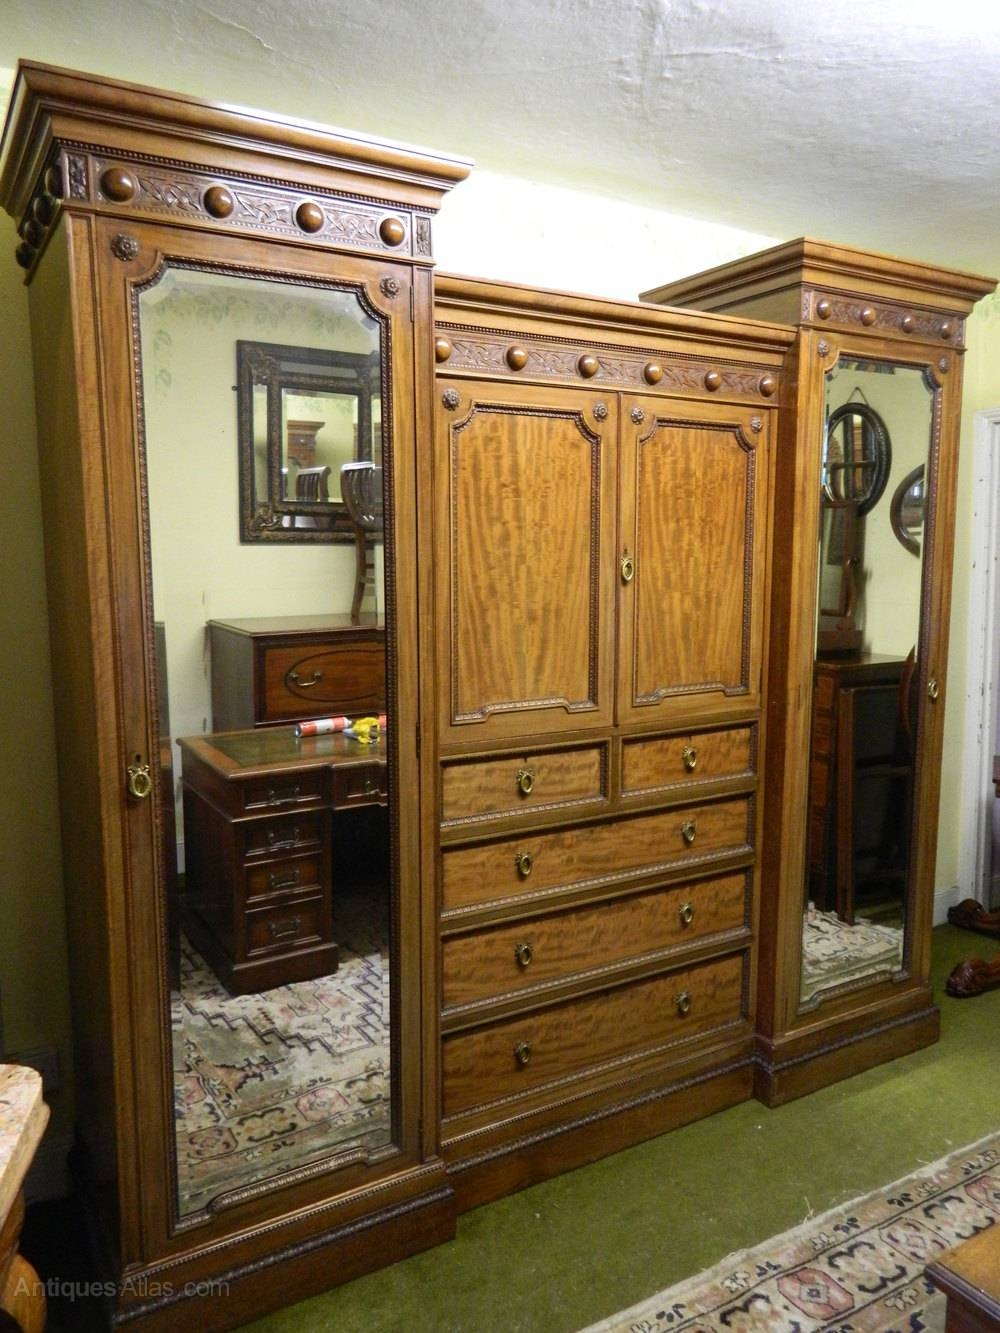 Mahogany Breakfront Wardrobe - Antiques Atlas regarding Breakfront Wardrobe (Image 13 of 30)